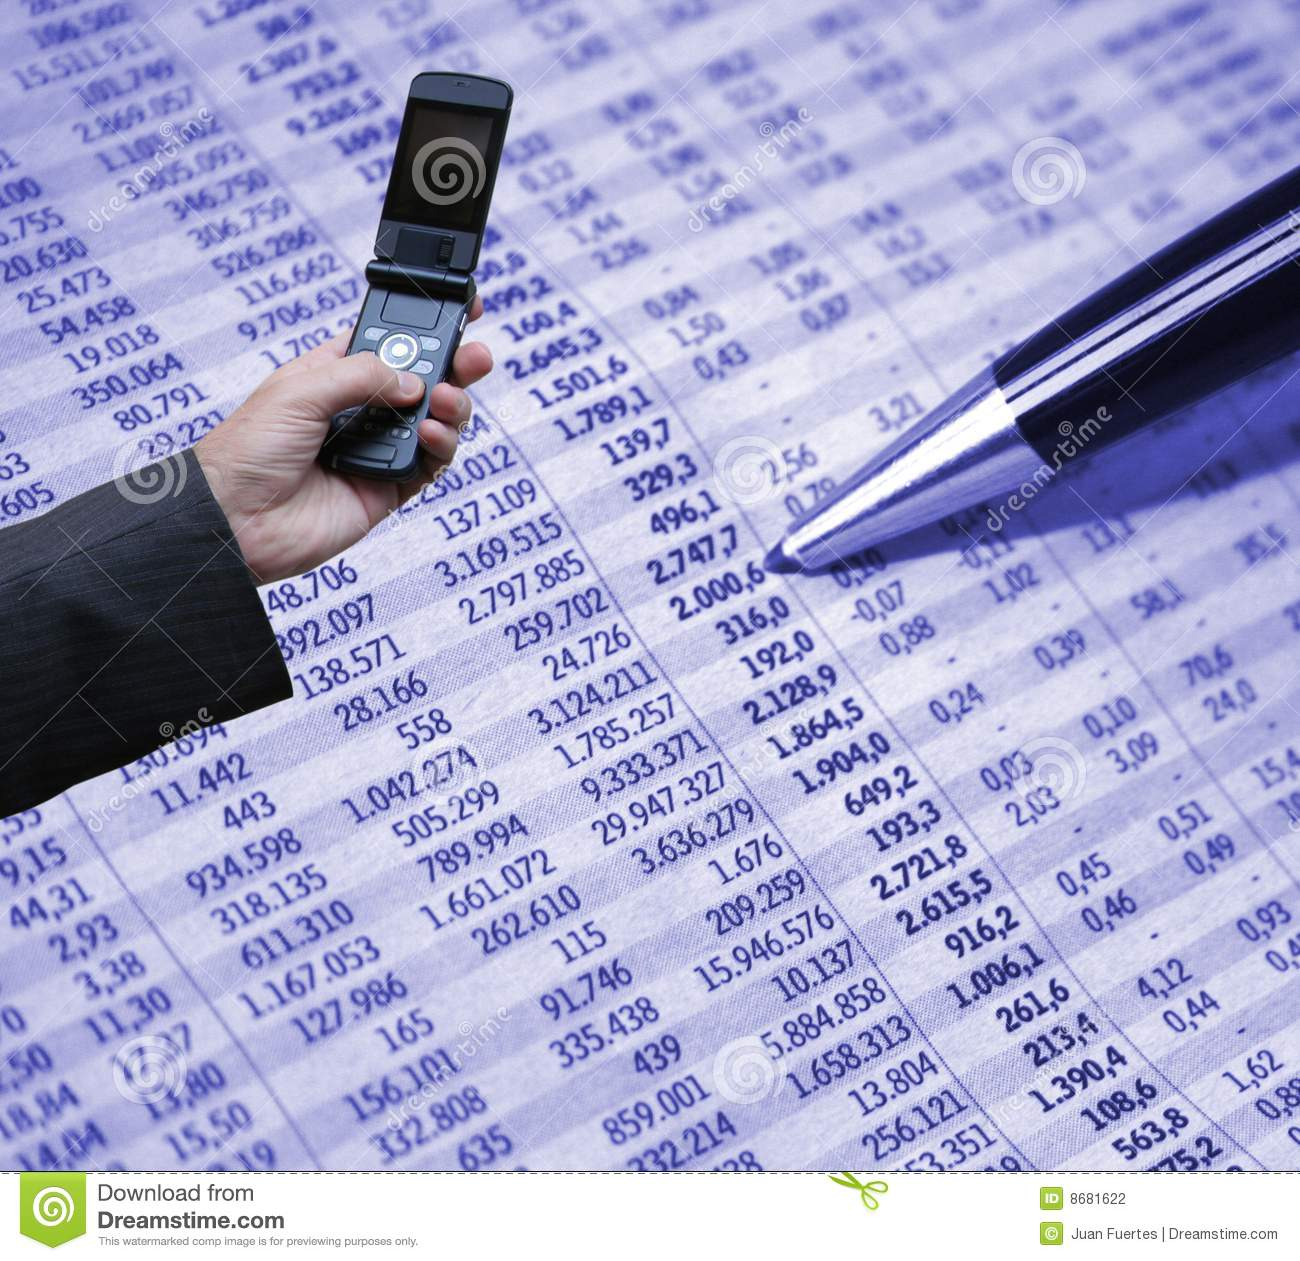 accounting and technology stock photography image 8681622